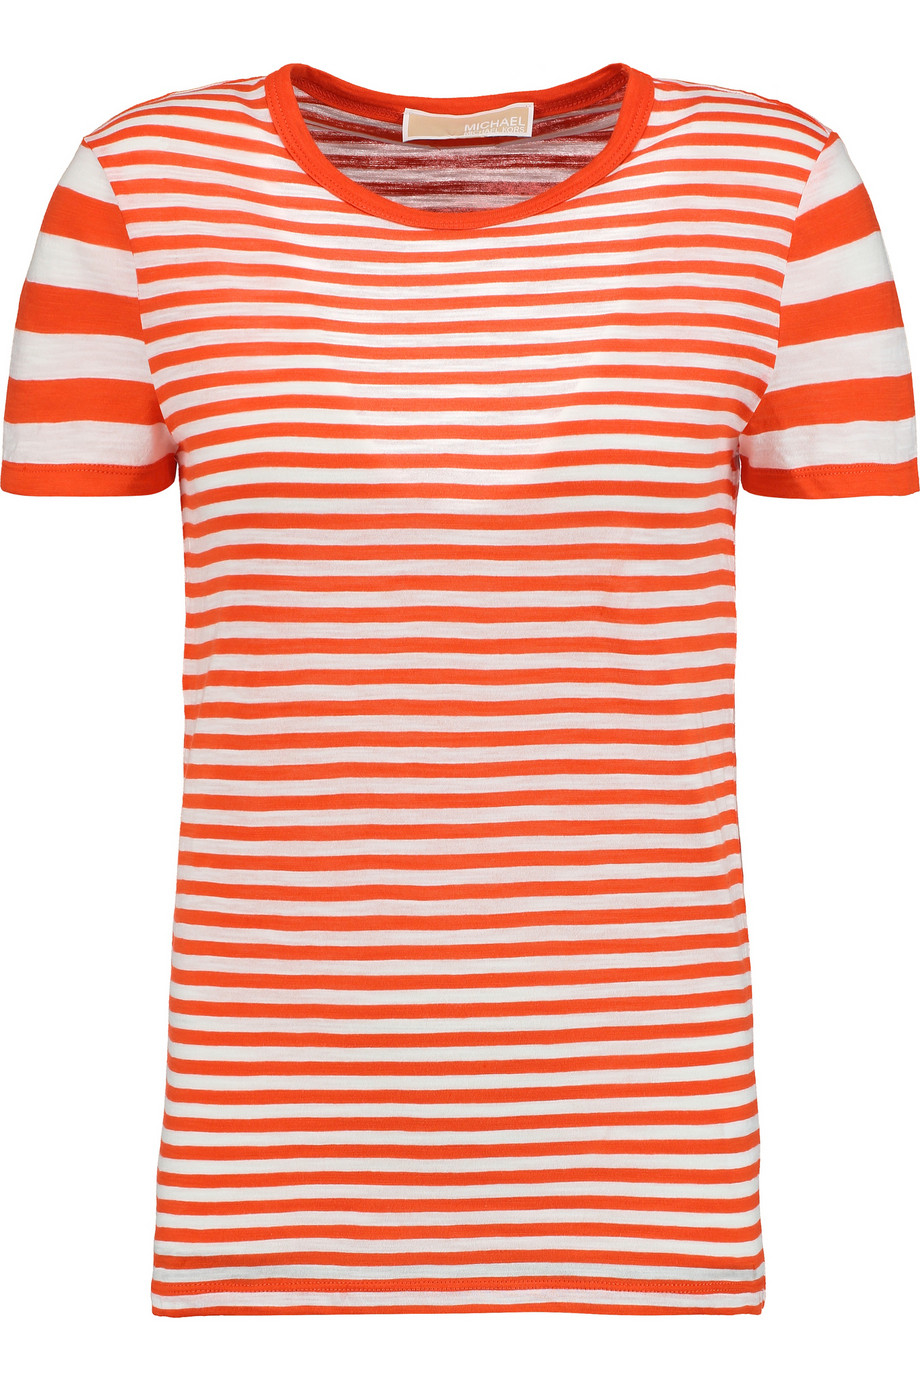 Michael michael kors Striped Cotton-jersey T-shirt in Red ...